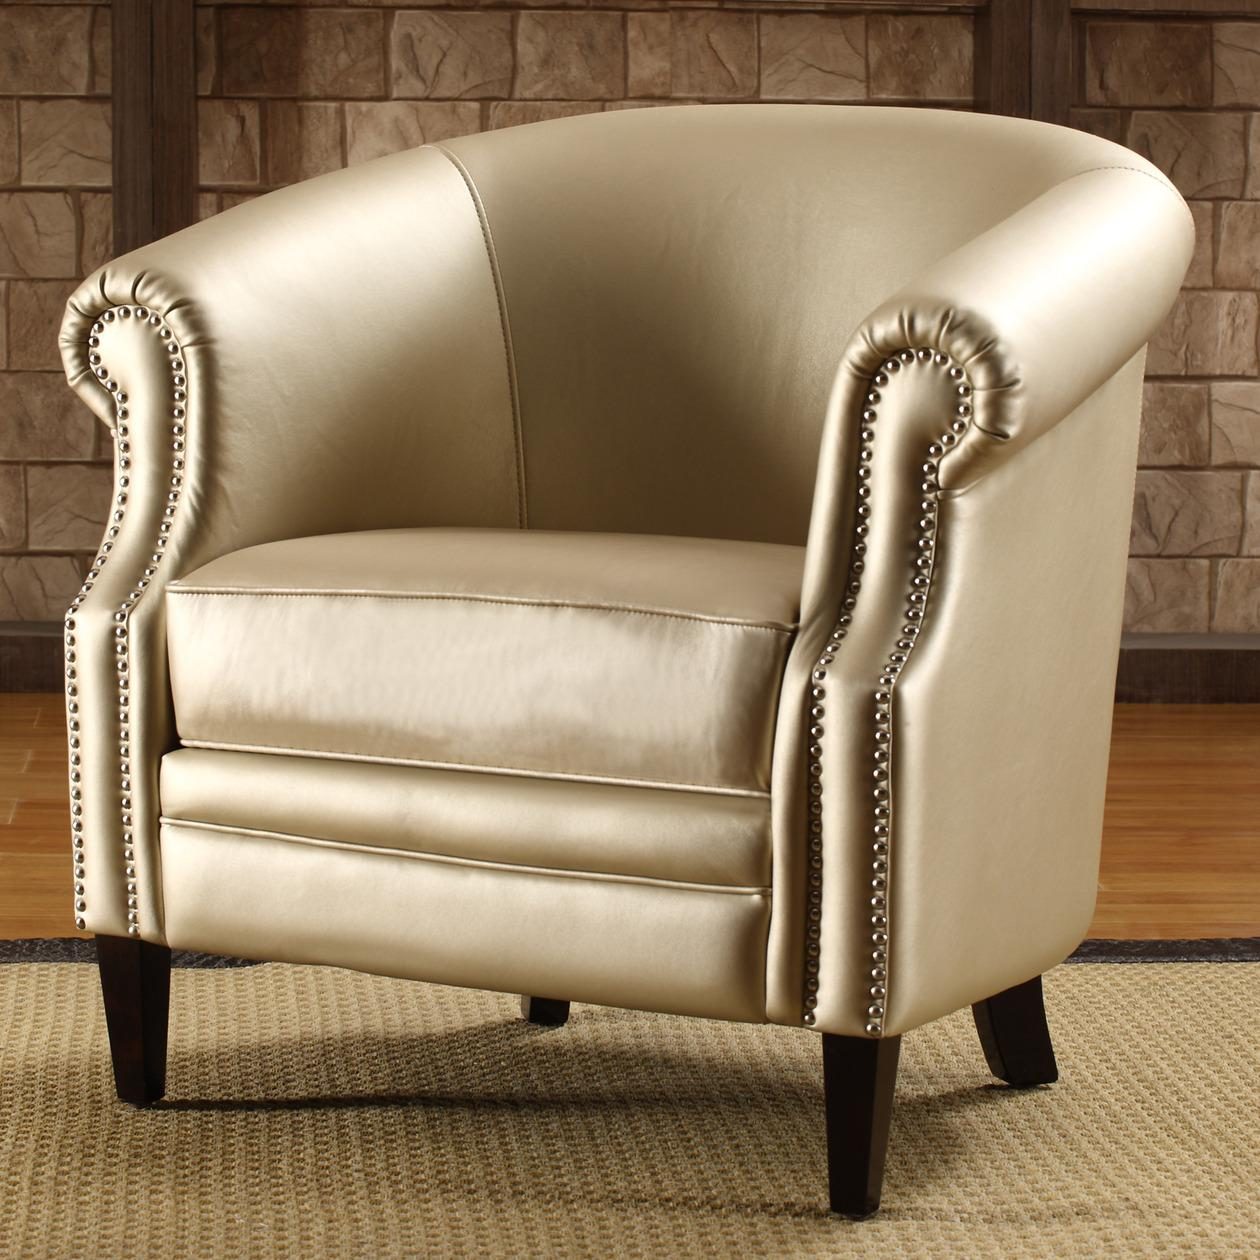 Furniture For Sale Gt Accent Chair Adfind Org